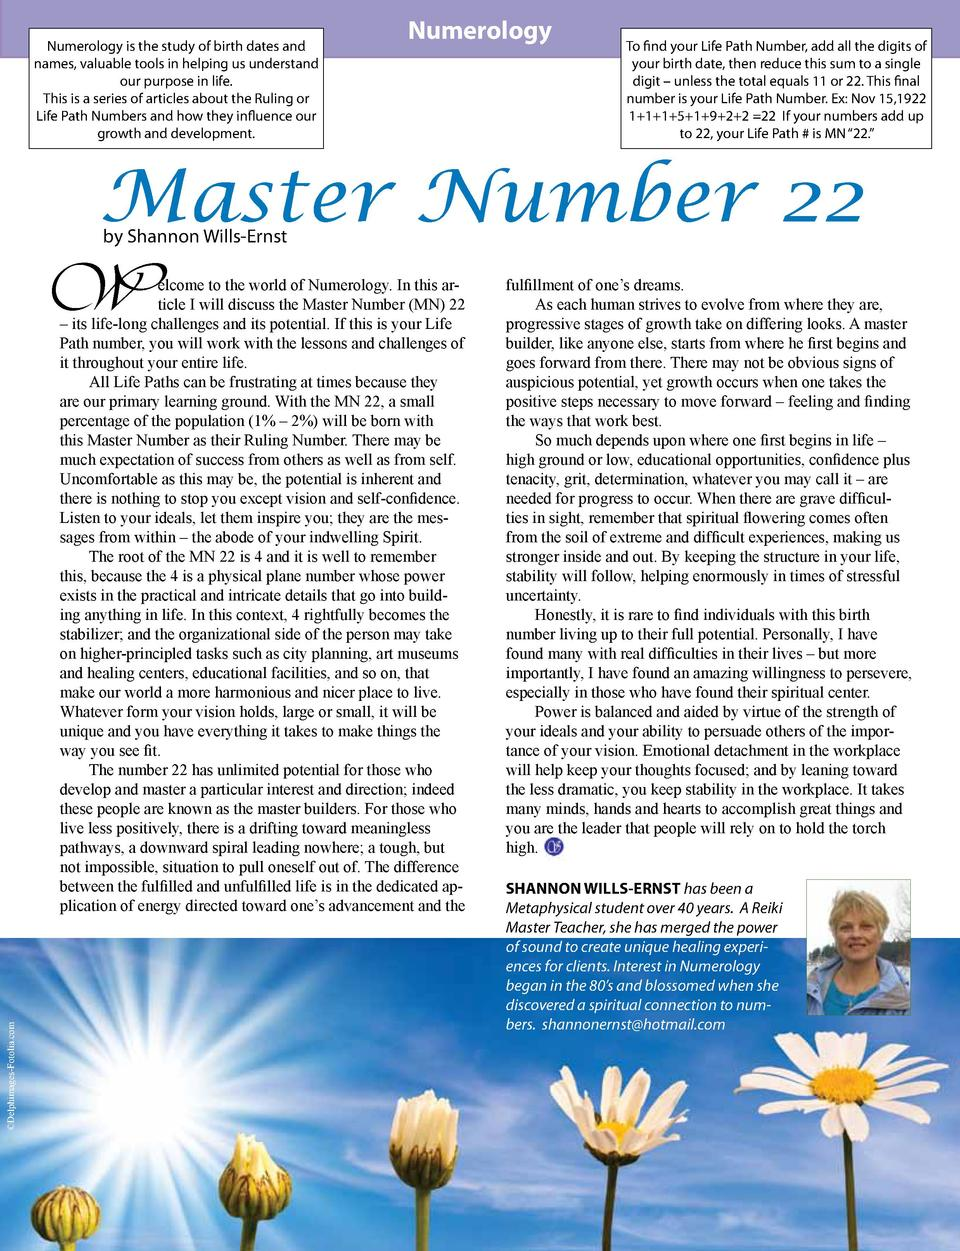 Numerology is the study of birth dates and names, valuable tools in helping us understand our purpose in life. This is a s...